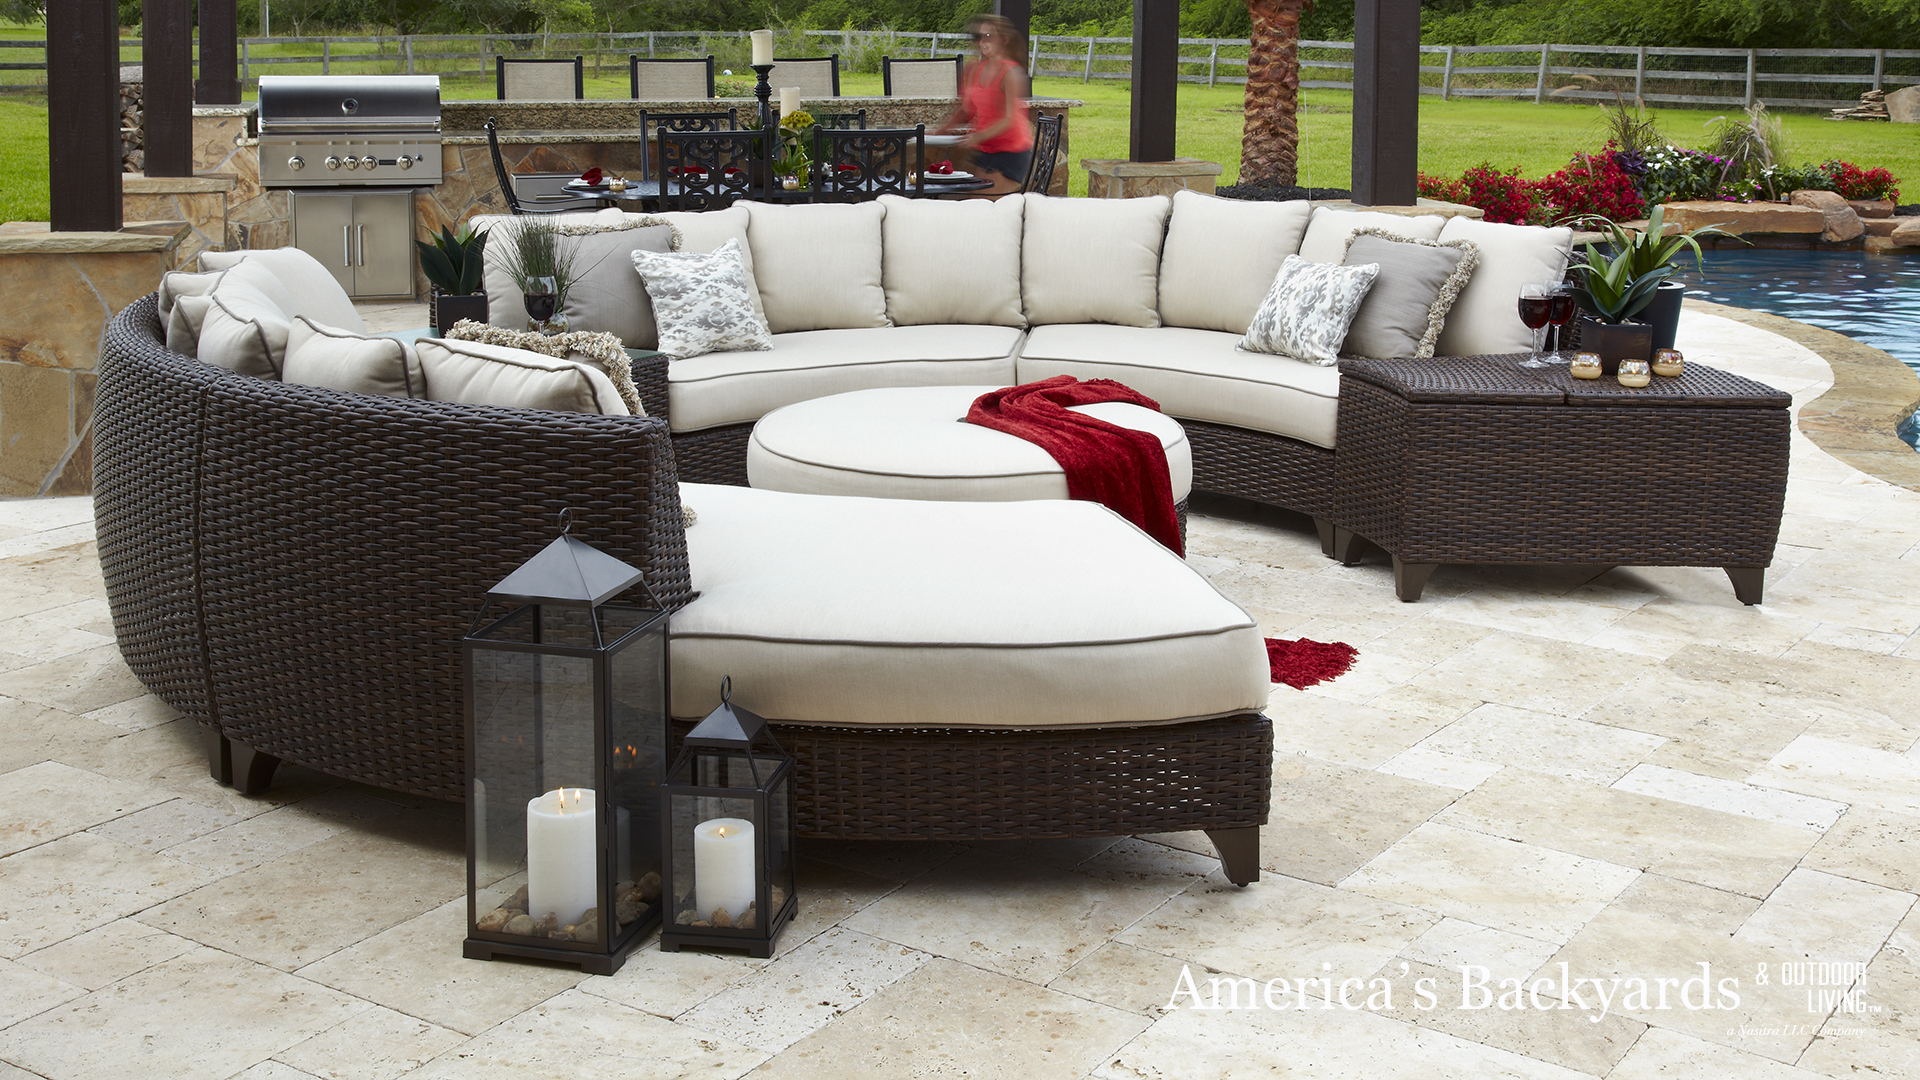 America s Backyards & Outdoor Living Outdoor Patio Furniture